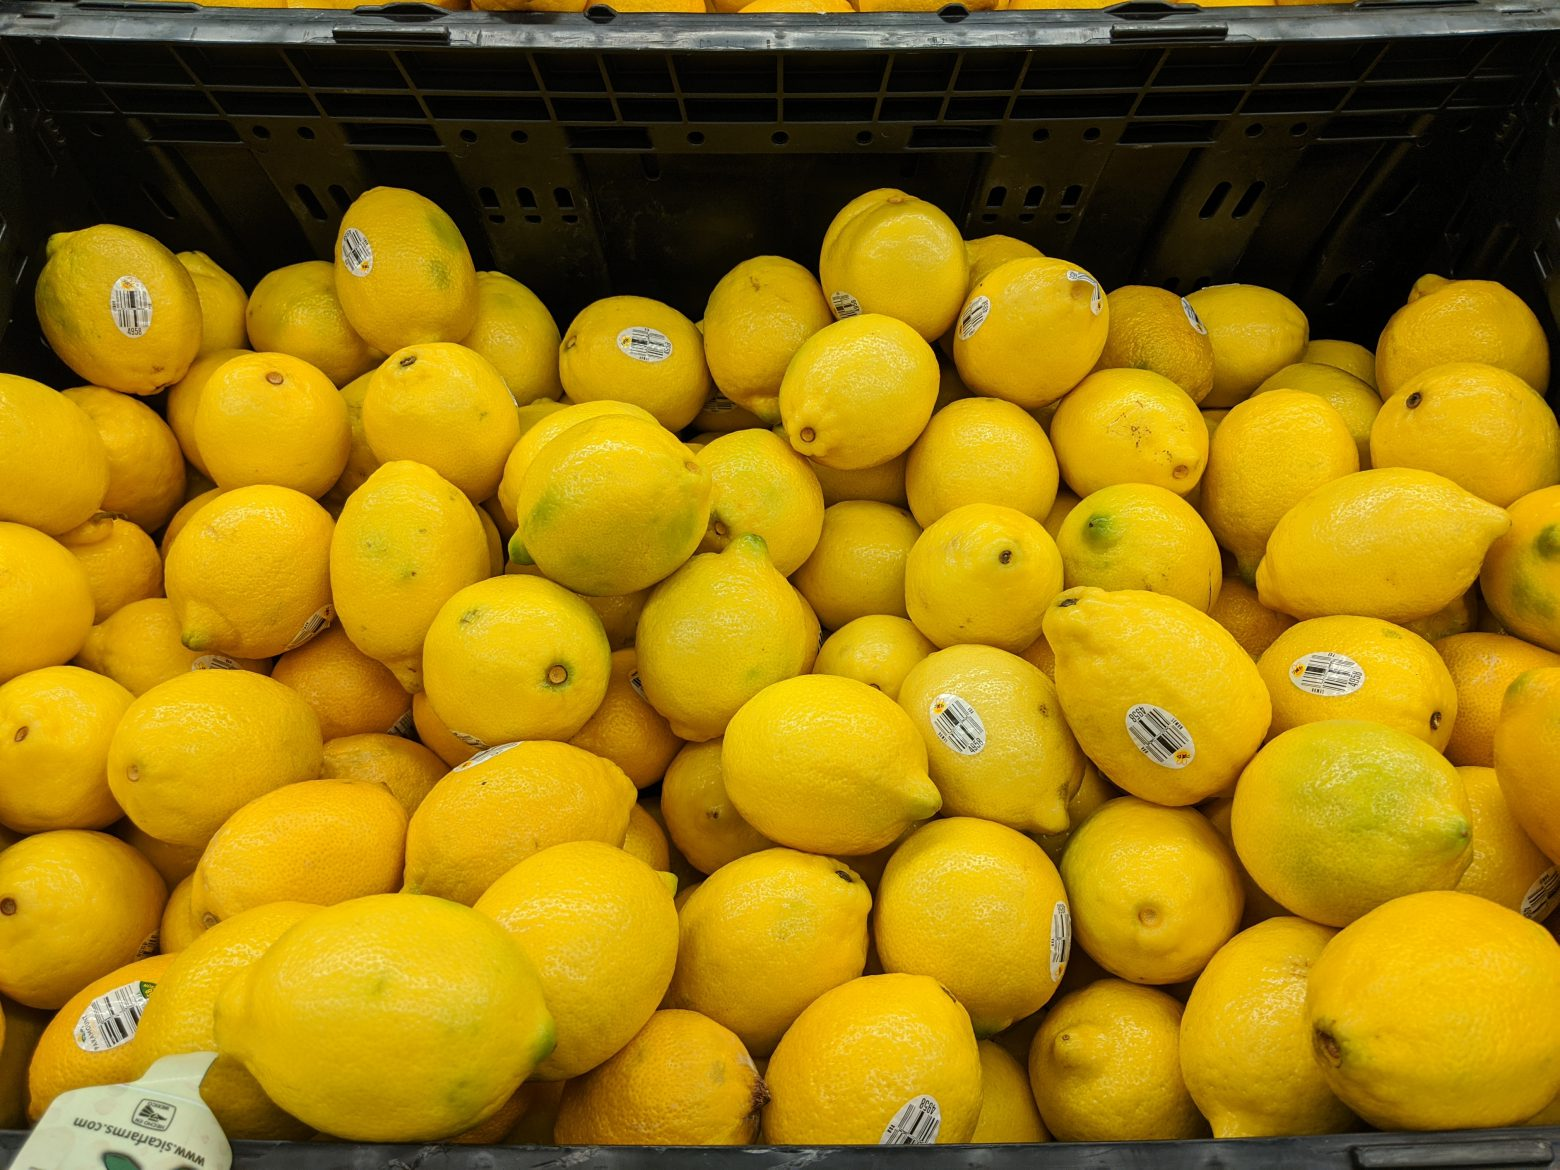 Citrus: Fresh, Plastic or Glass